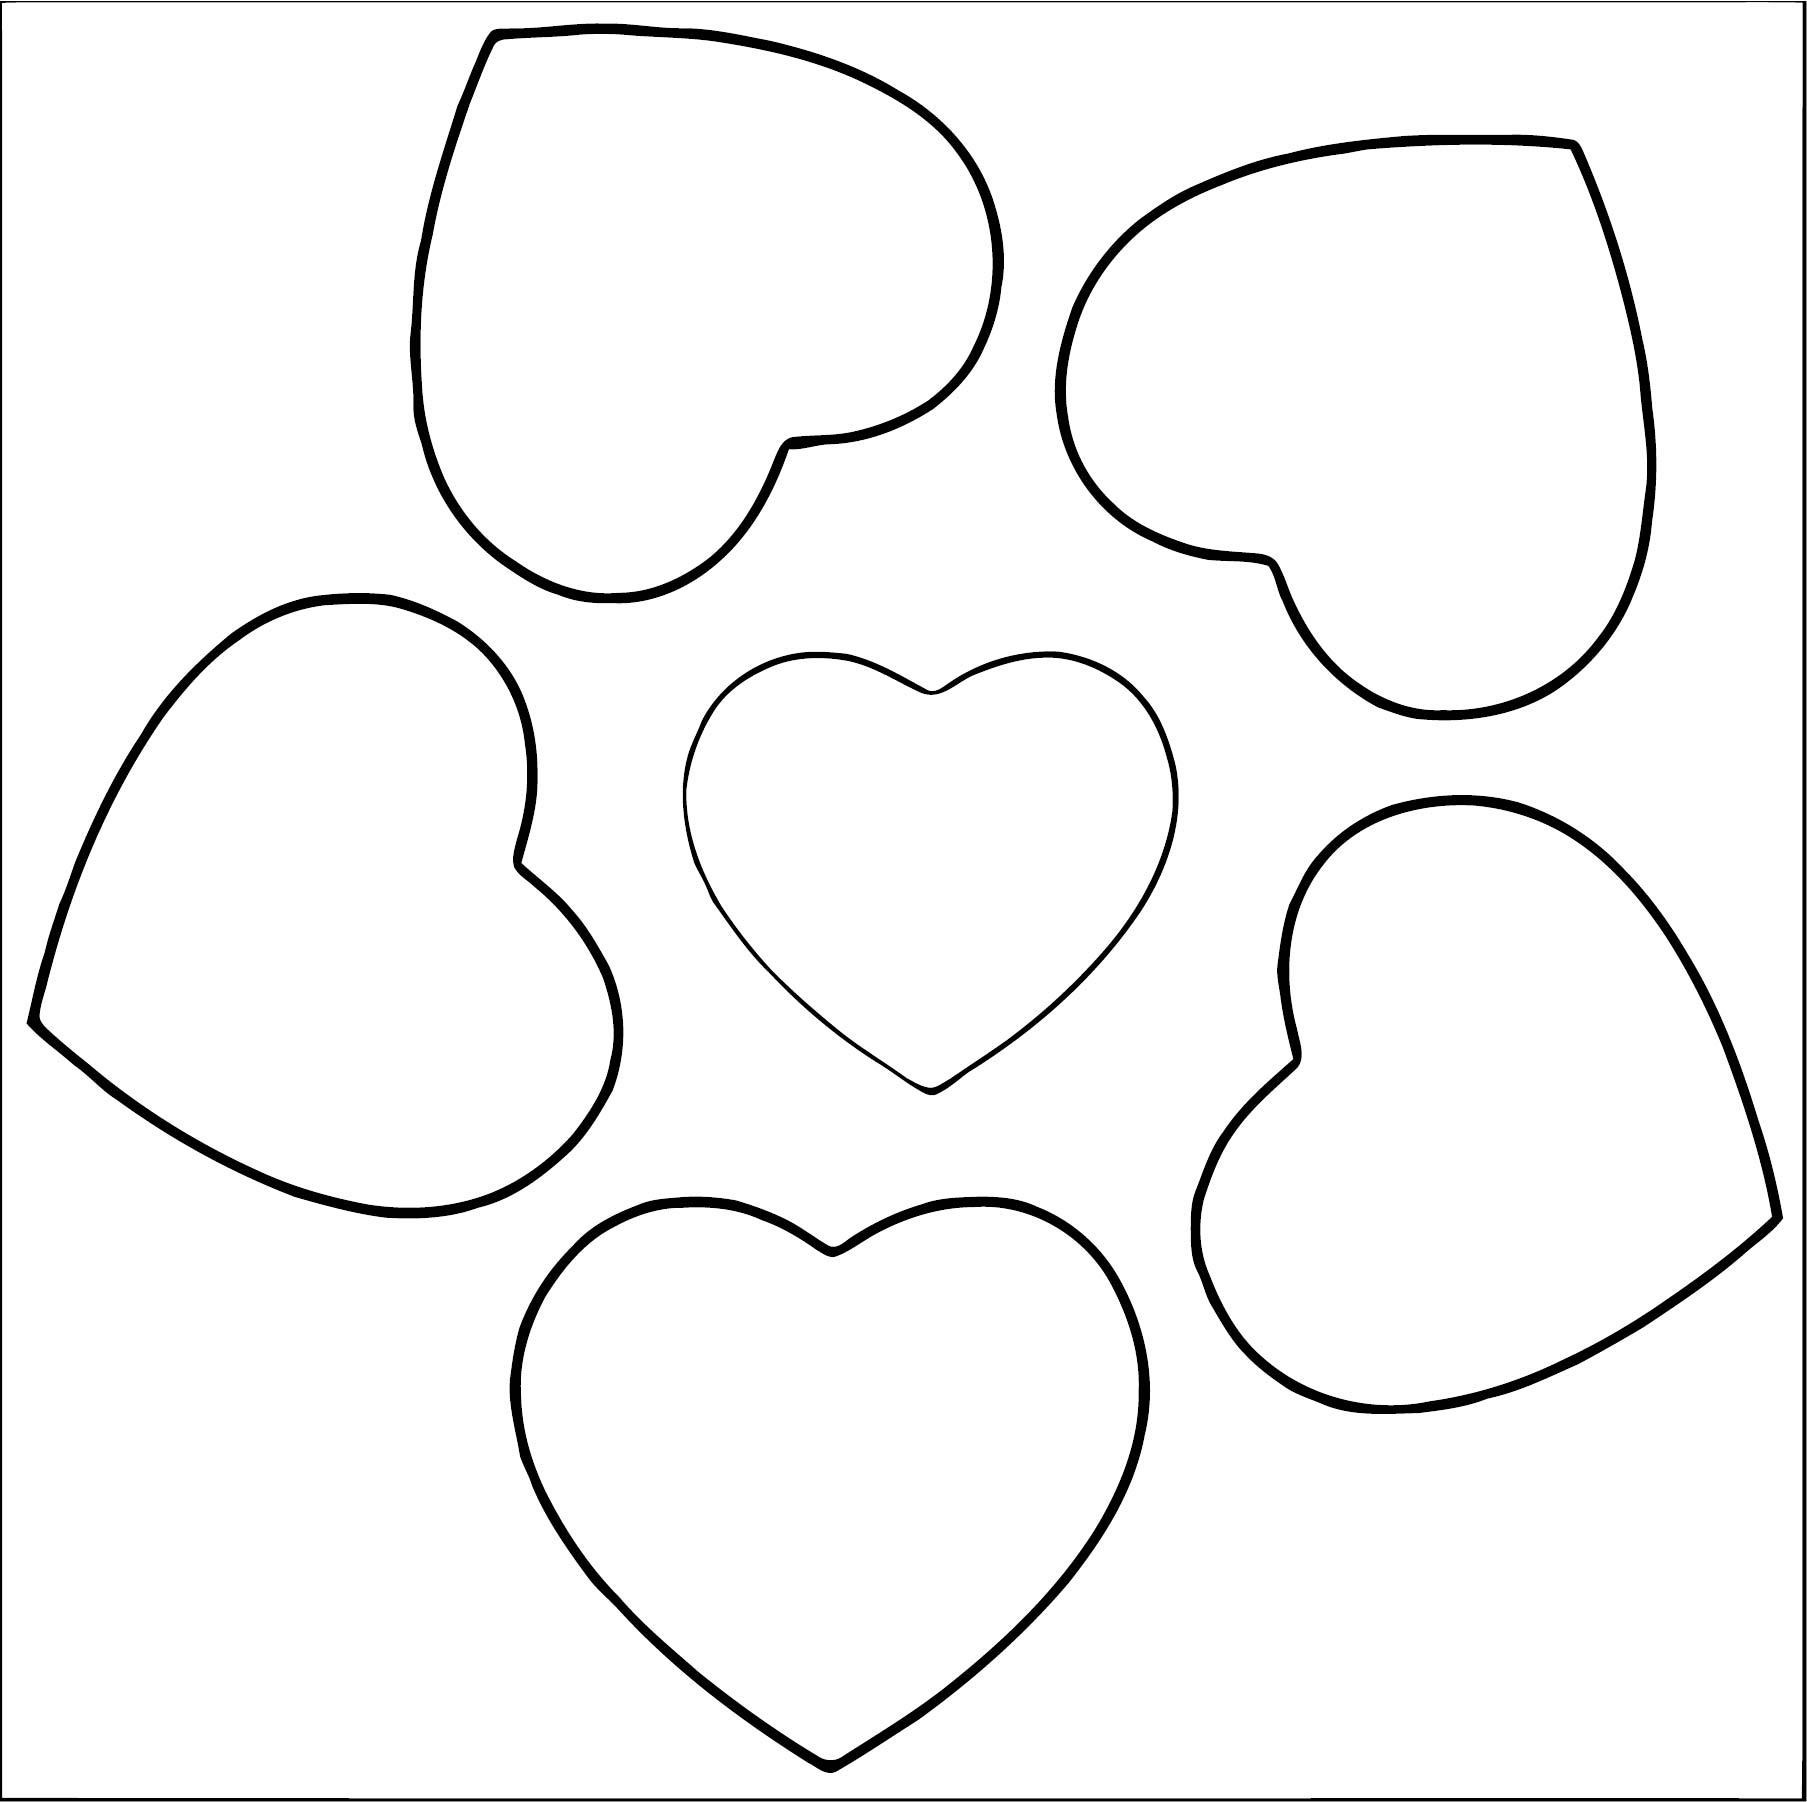 Heart Flower Coloring Page